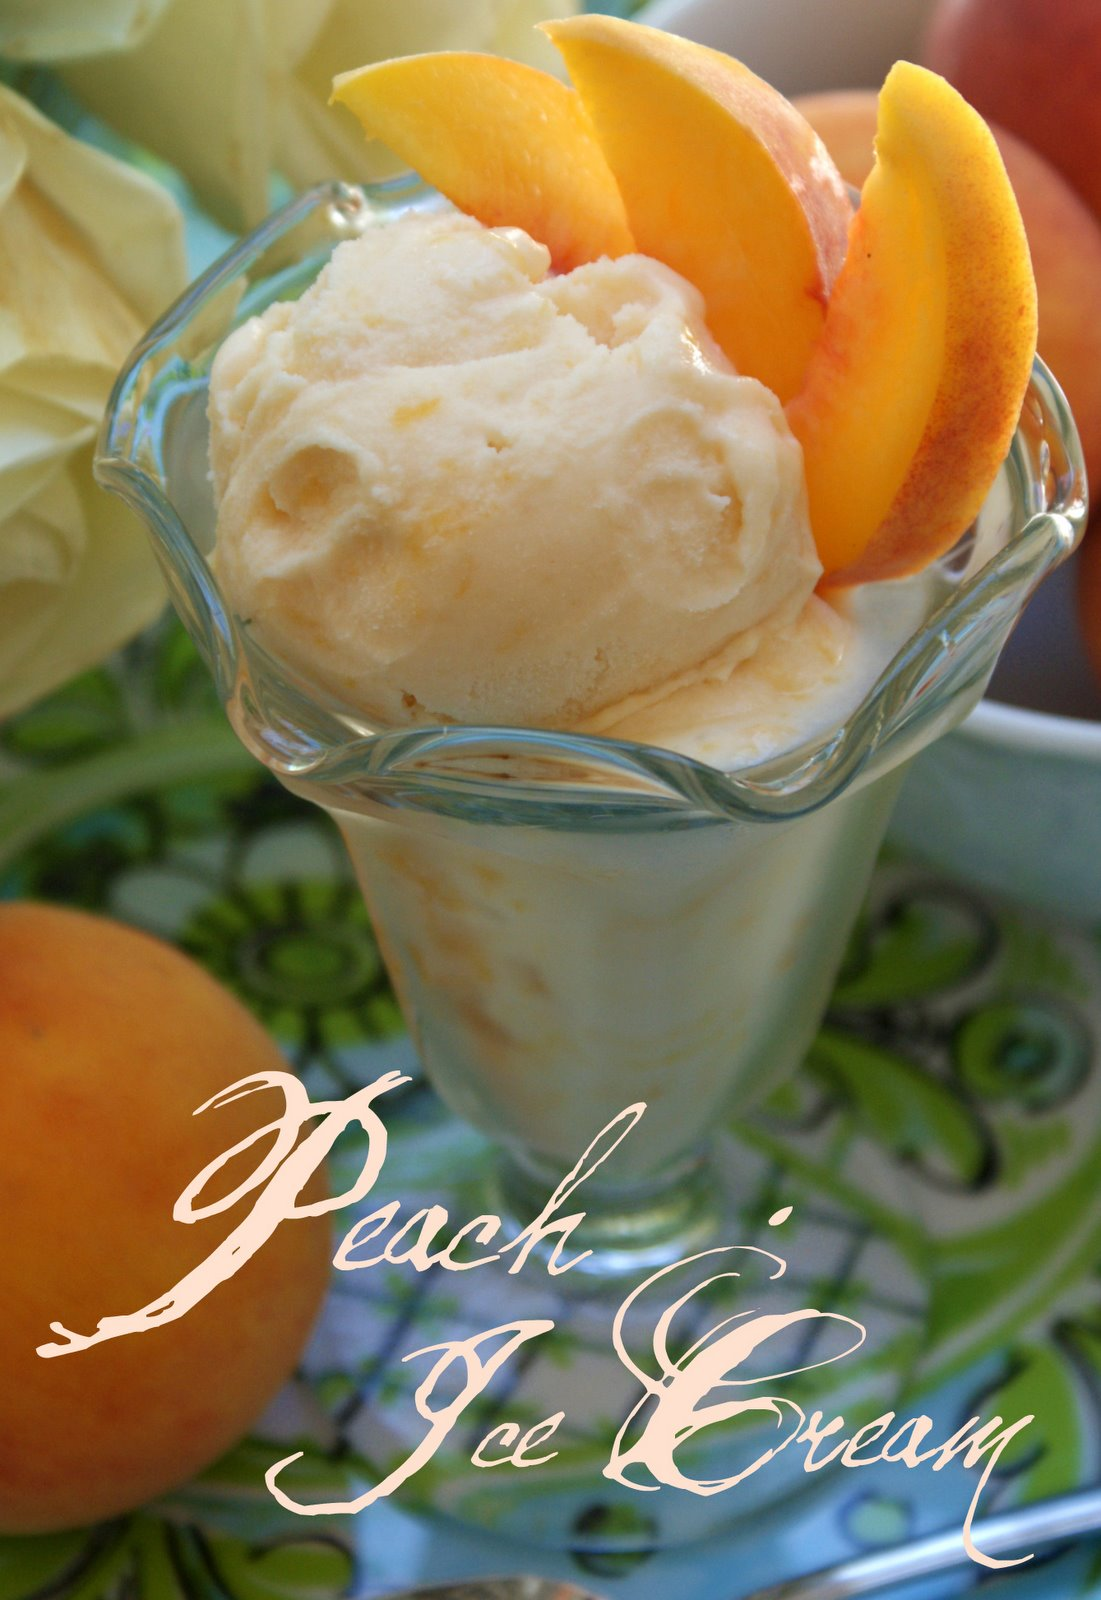 Little Loveliness: Peach Ice Cream